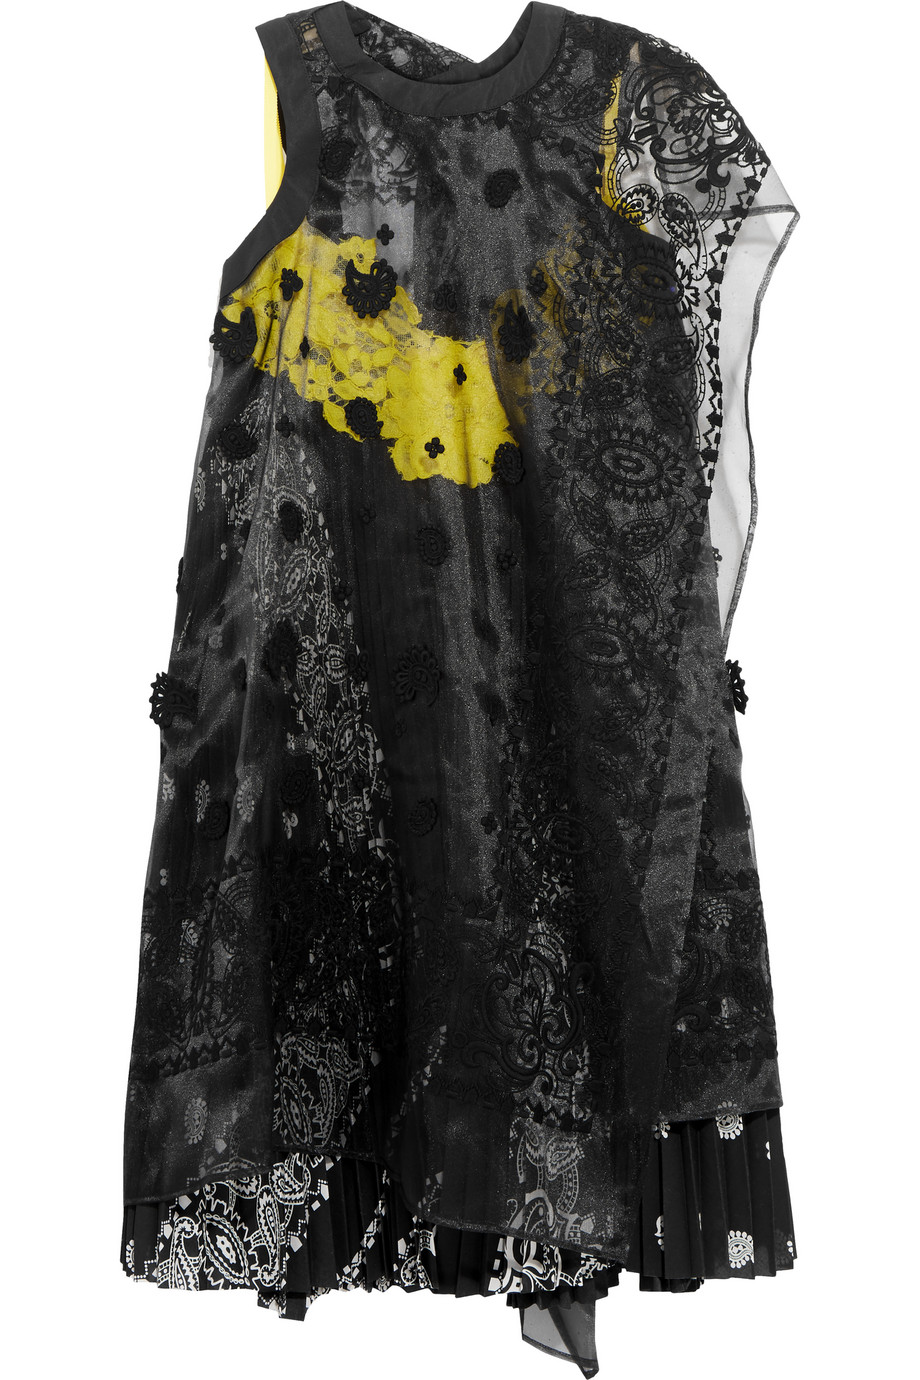 Sacai Embroidered Organza and Lace-Paneled Printed Voile Dress, Black, Women's - Embroidered, Size: 1